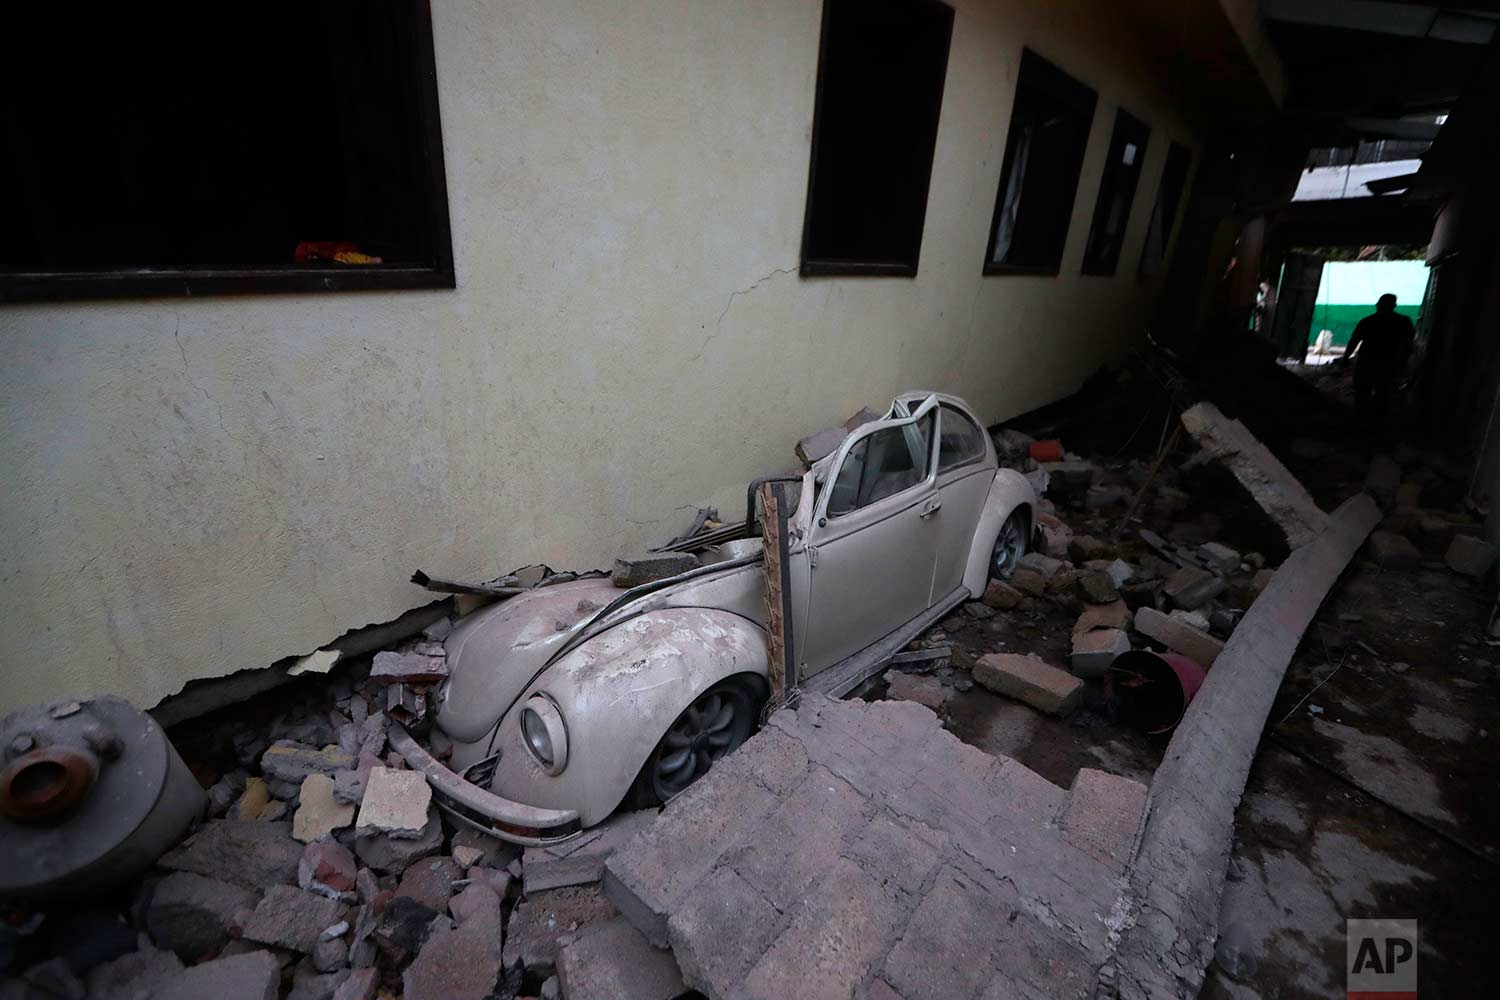 In this Sept. 20, 2017 photo, a car sits crushed from a building felled by a 7.1 earthquake, in Jojutla, Morelos state, Mexico. (AP Photo/Eduardo Verdugo)